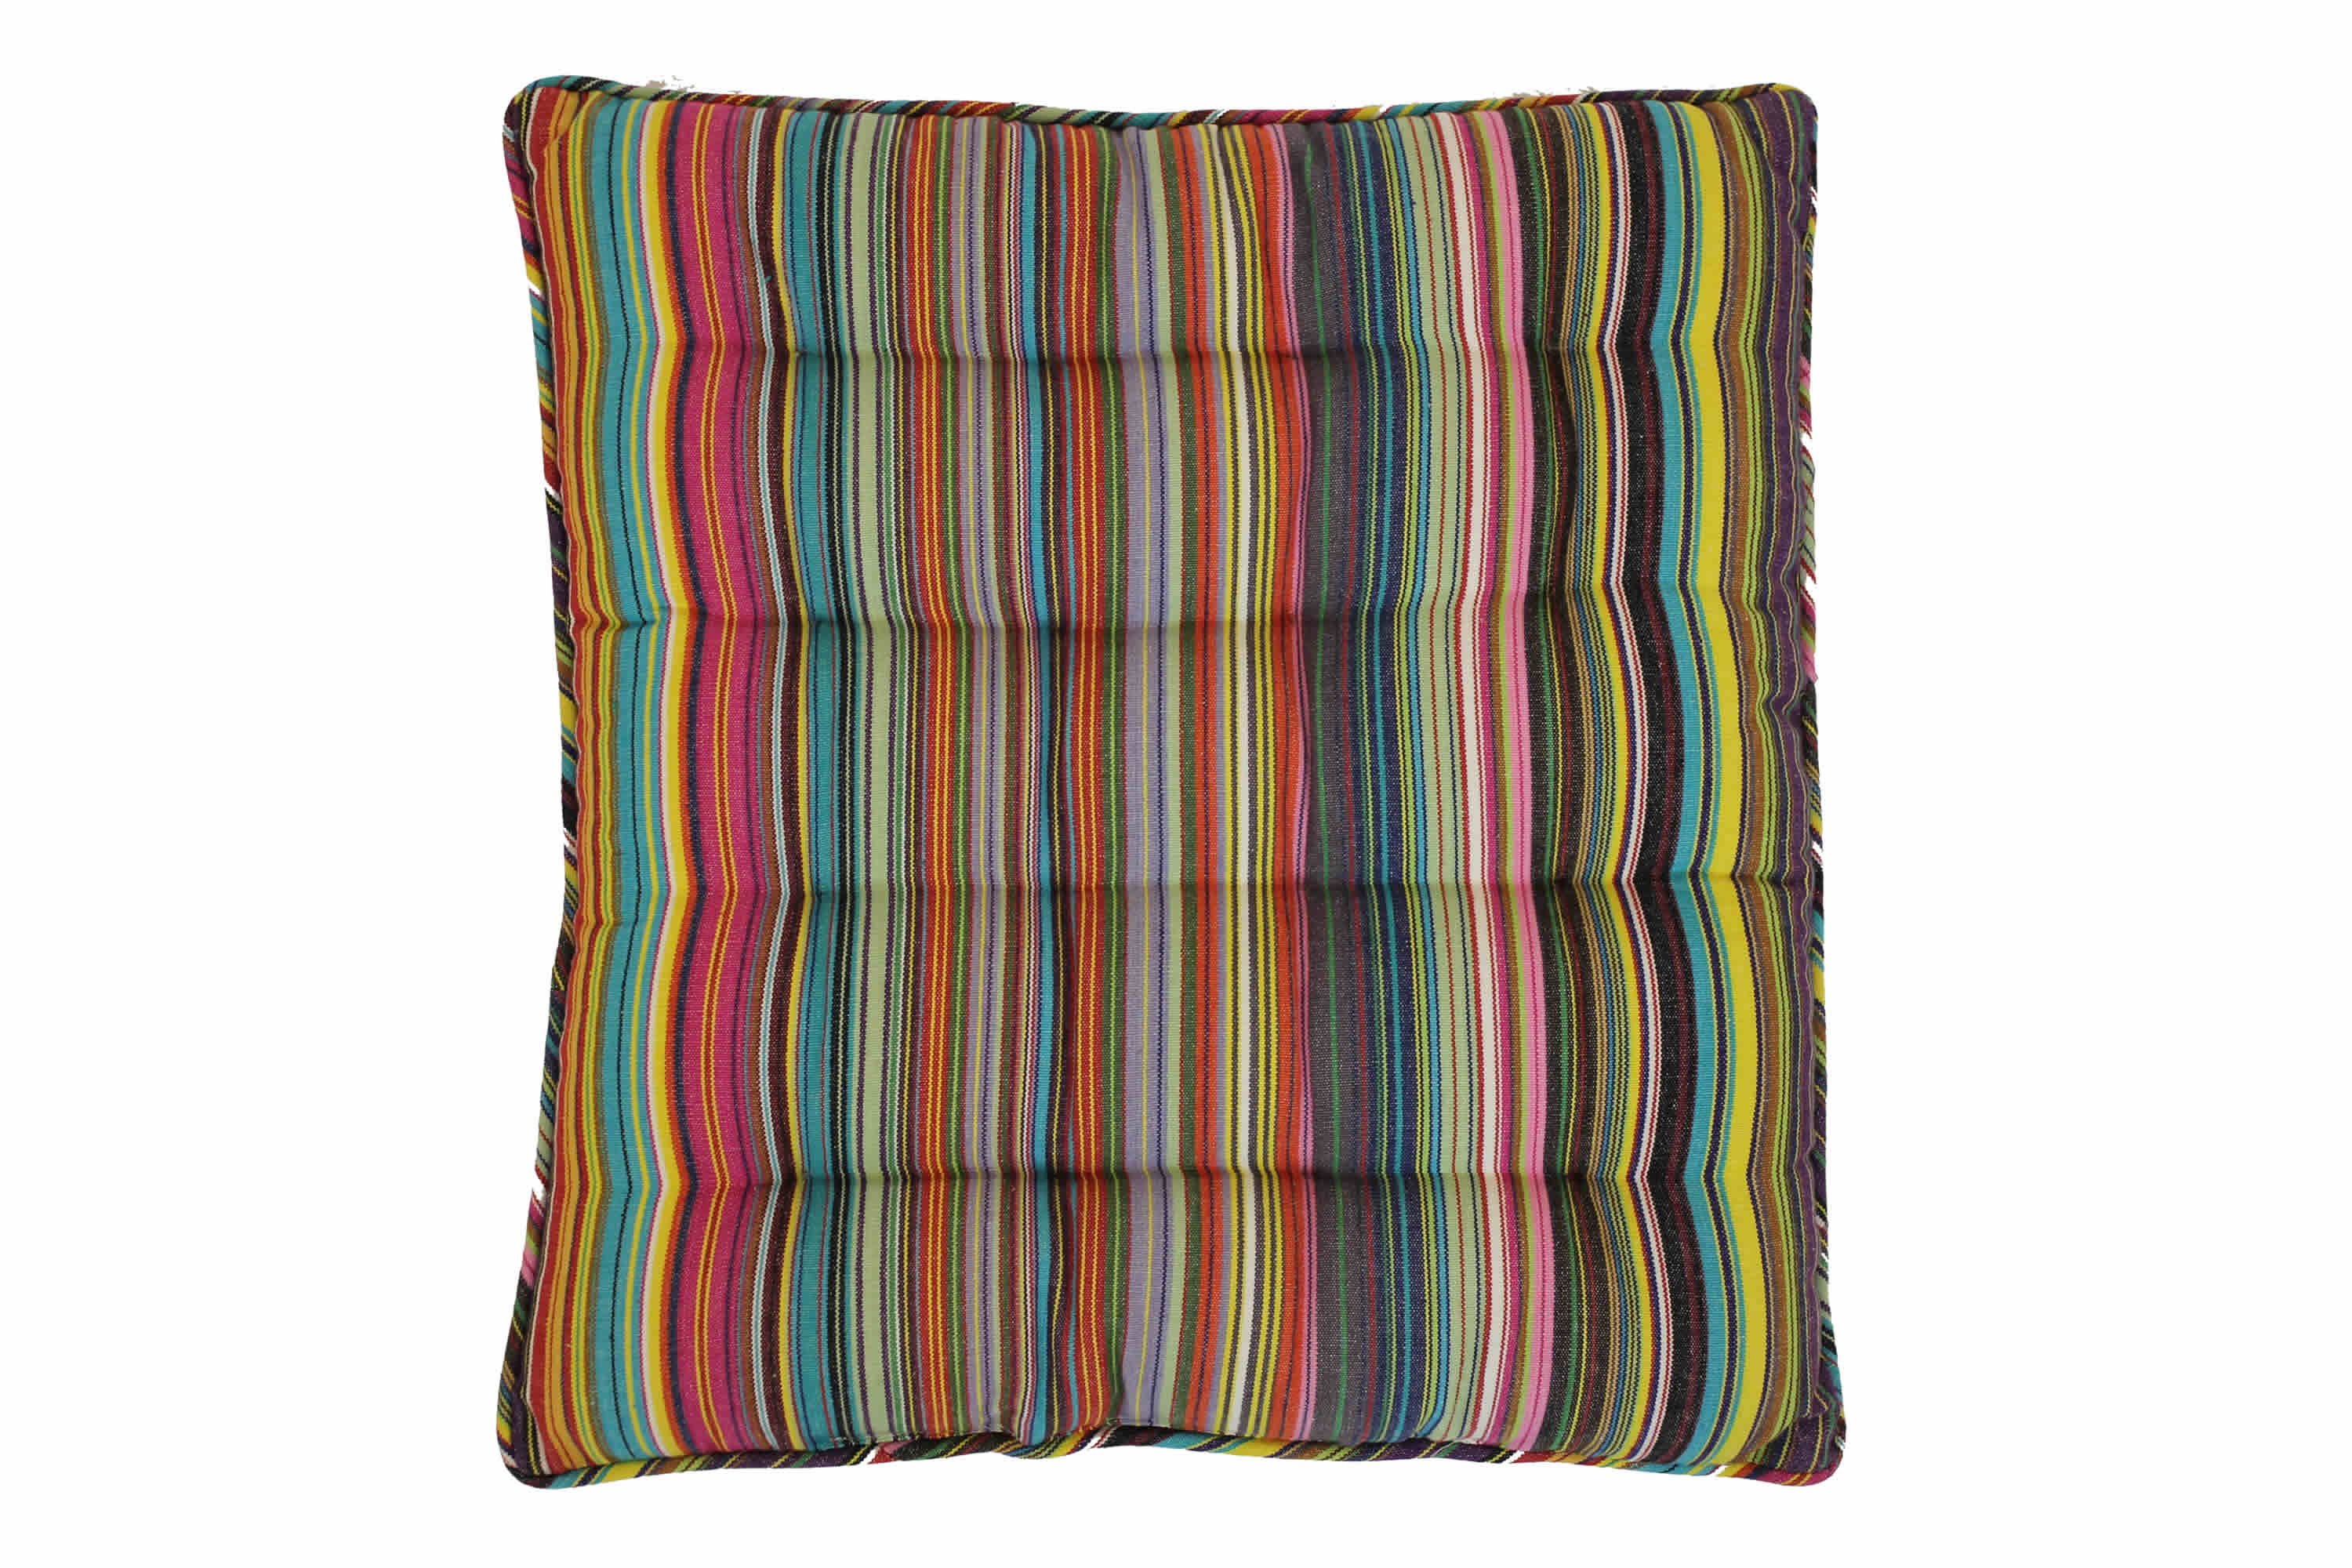 Striped Seat Pads in thin rainbow multi stripes